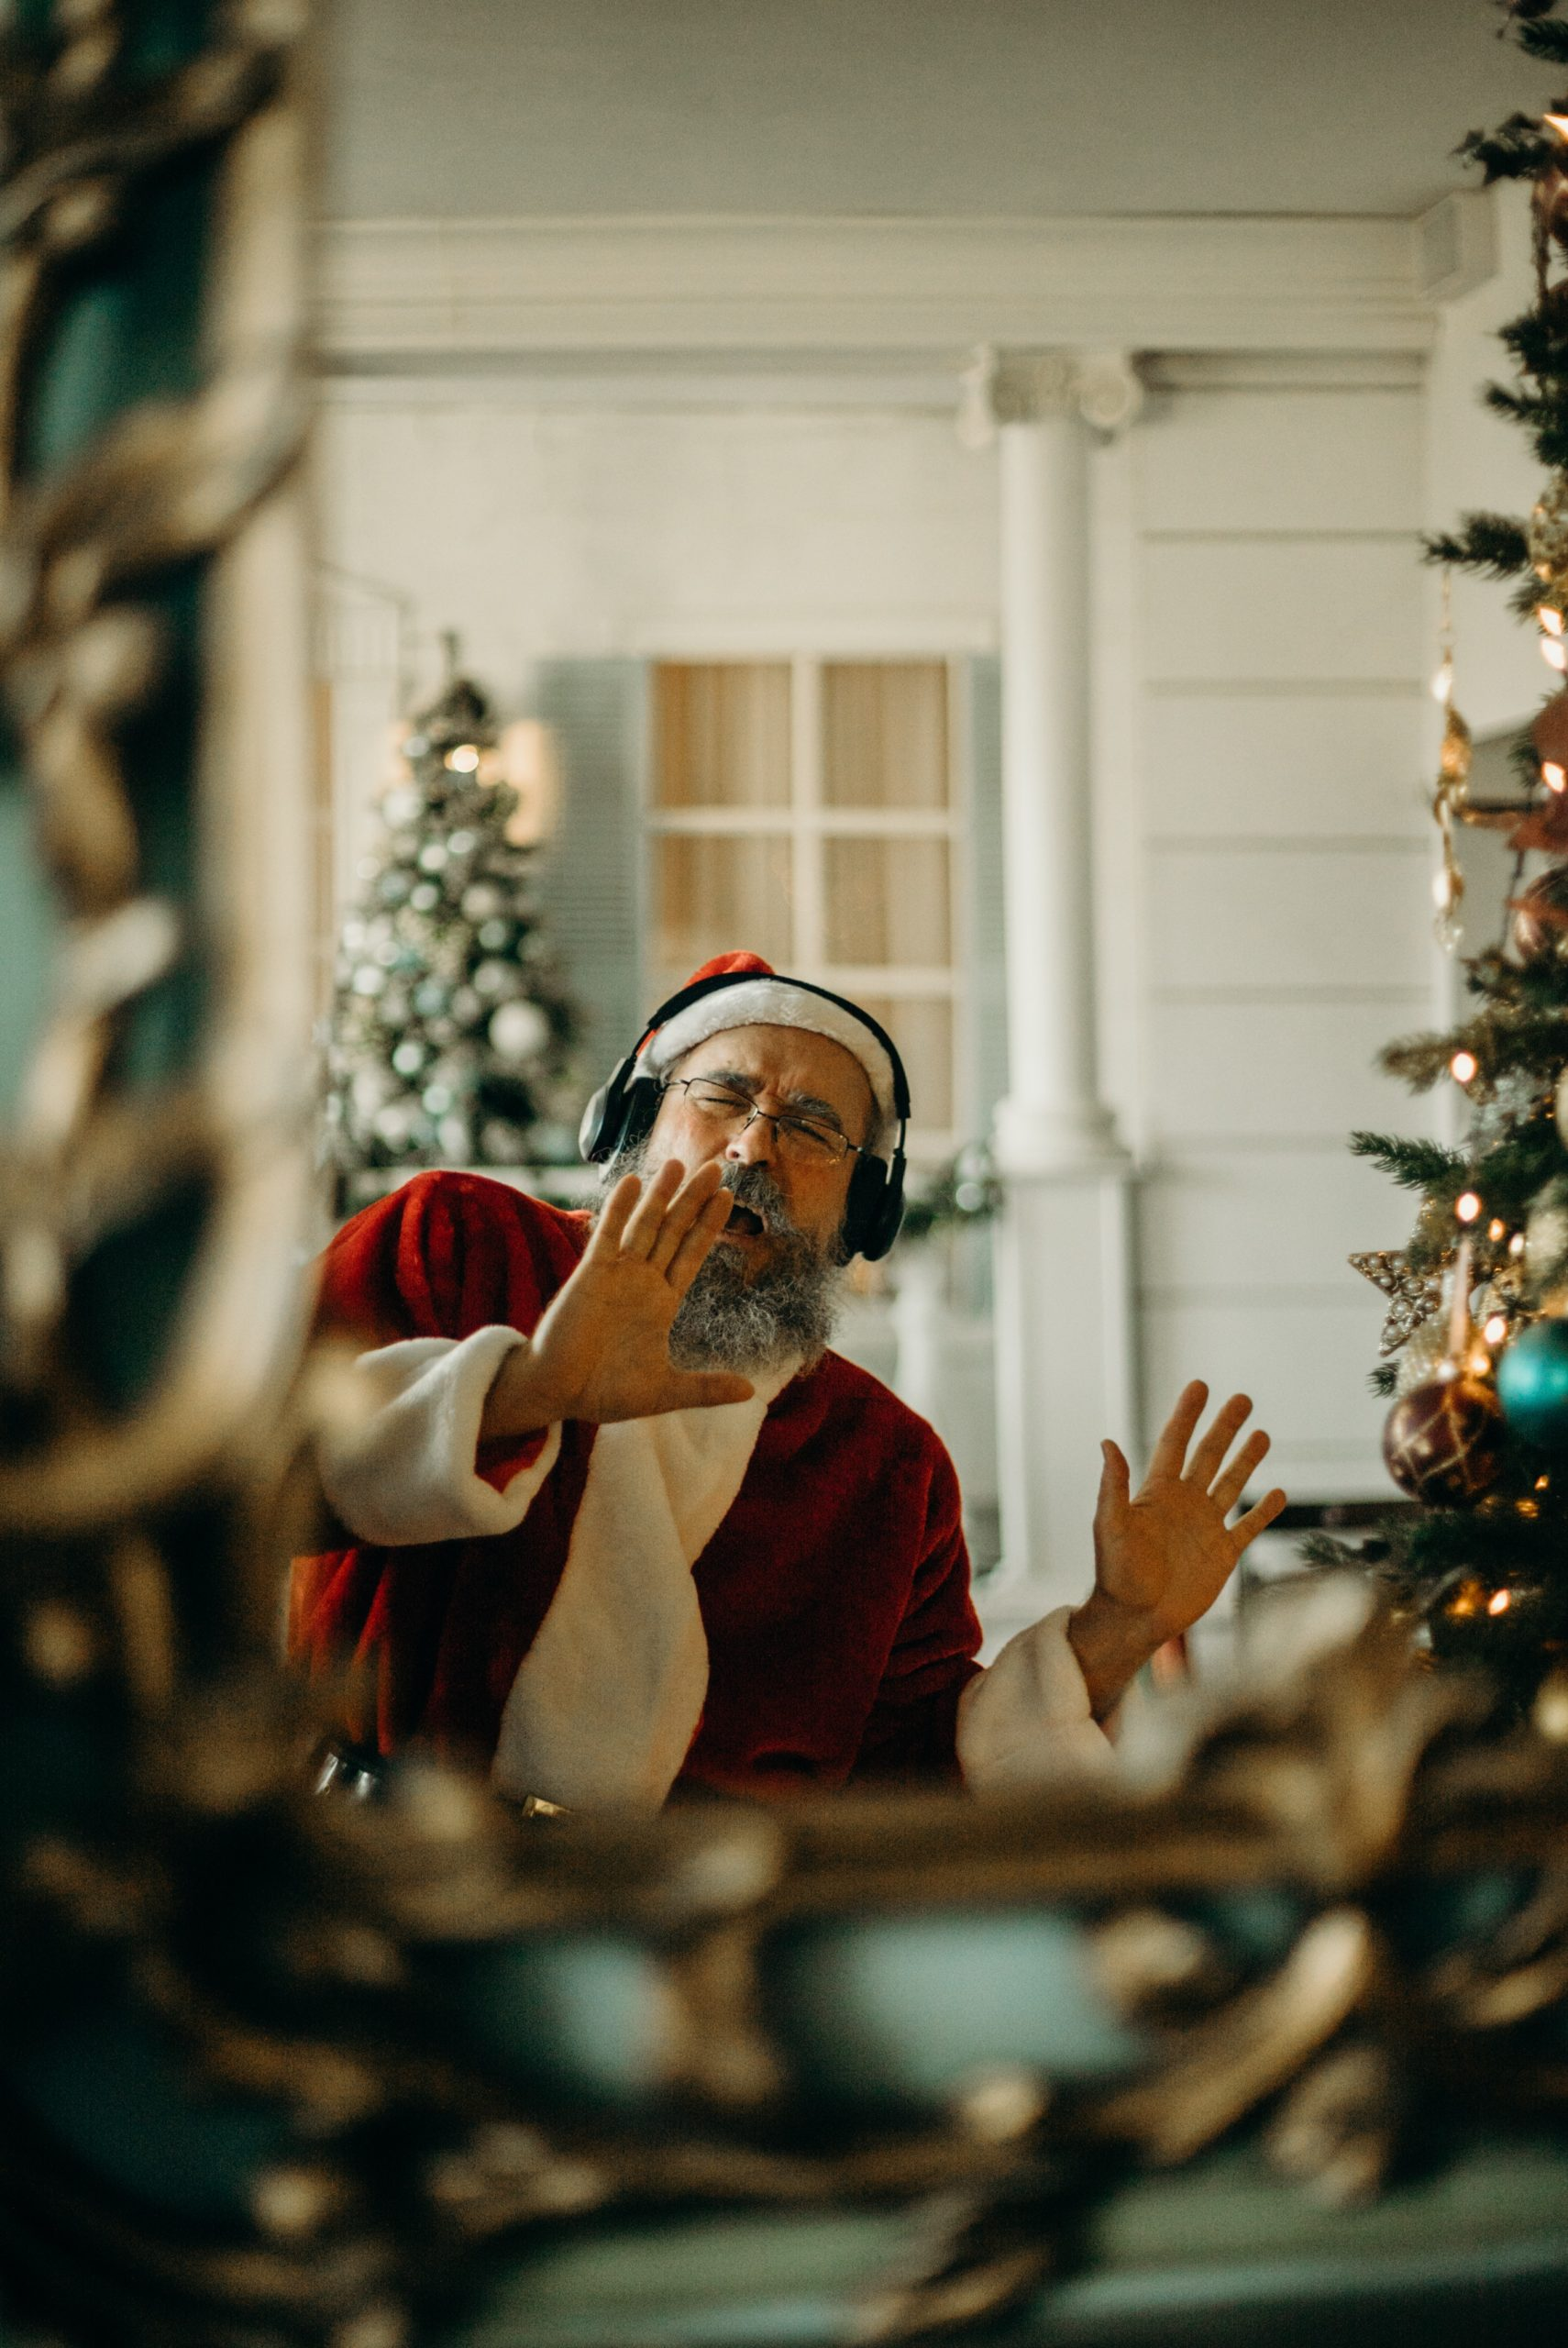 Celebrations for the Holidays and family get-togethers can end up badly unless you take certain precautions ahead of time.